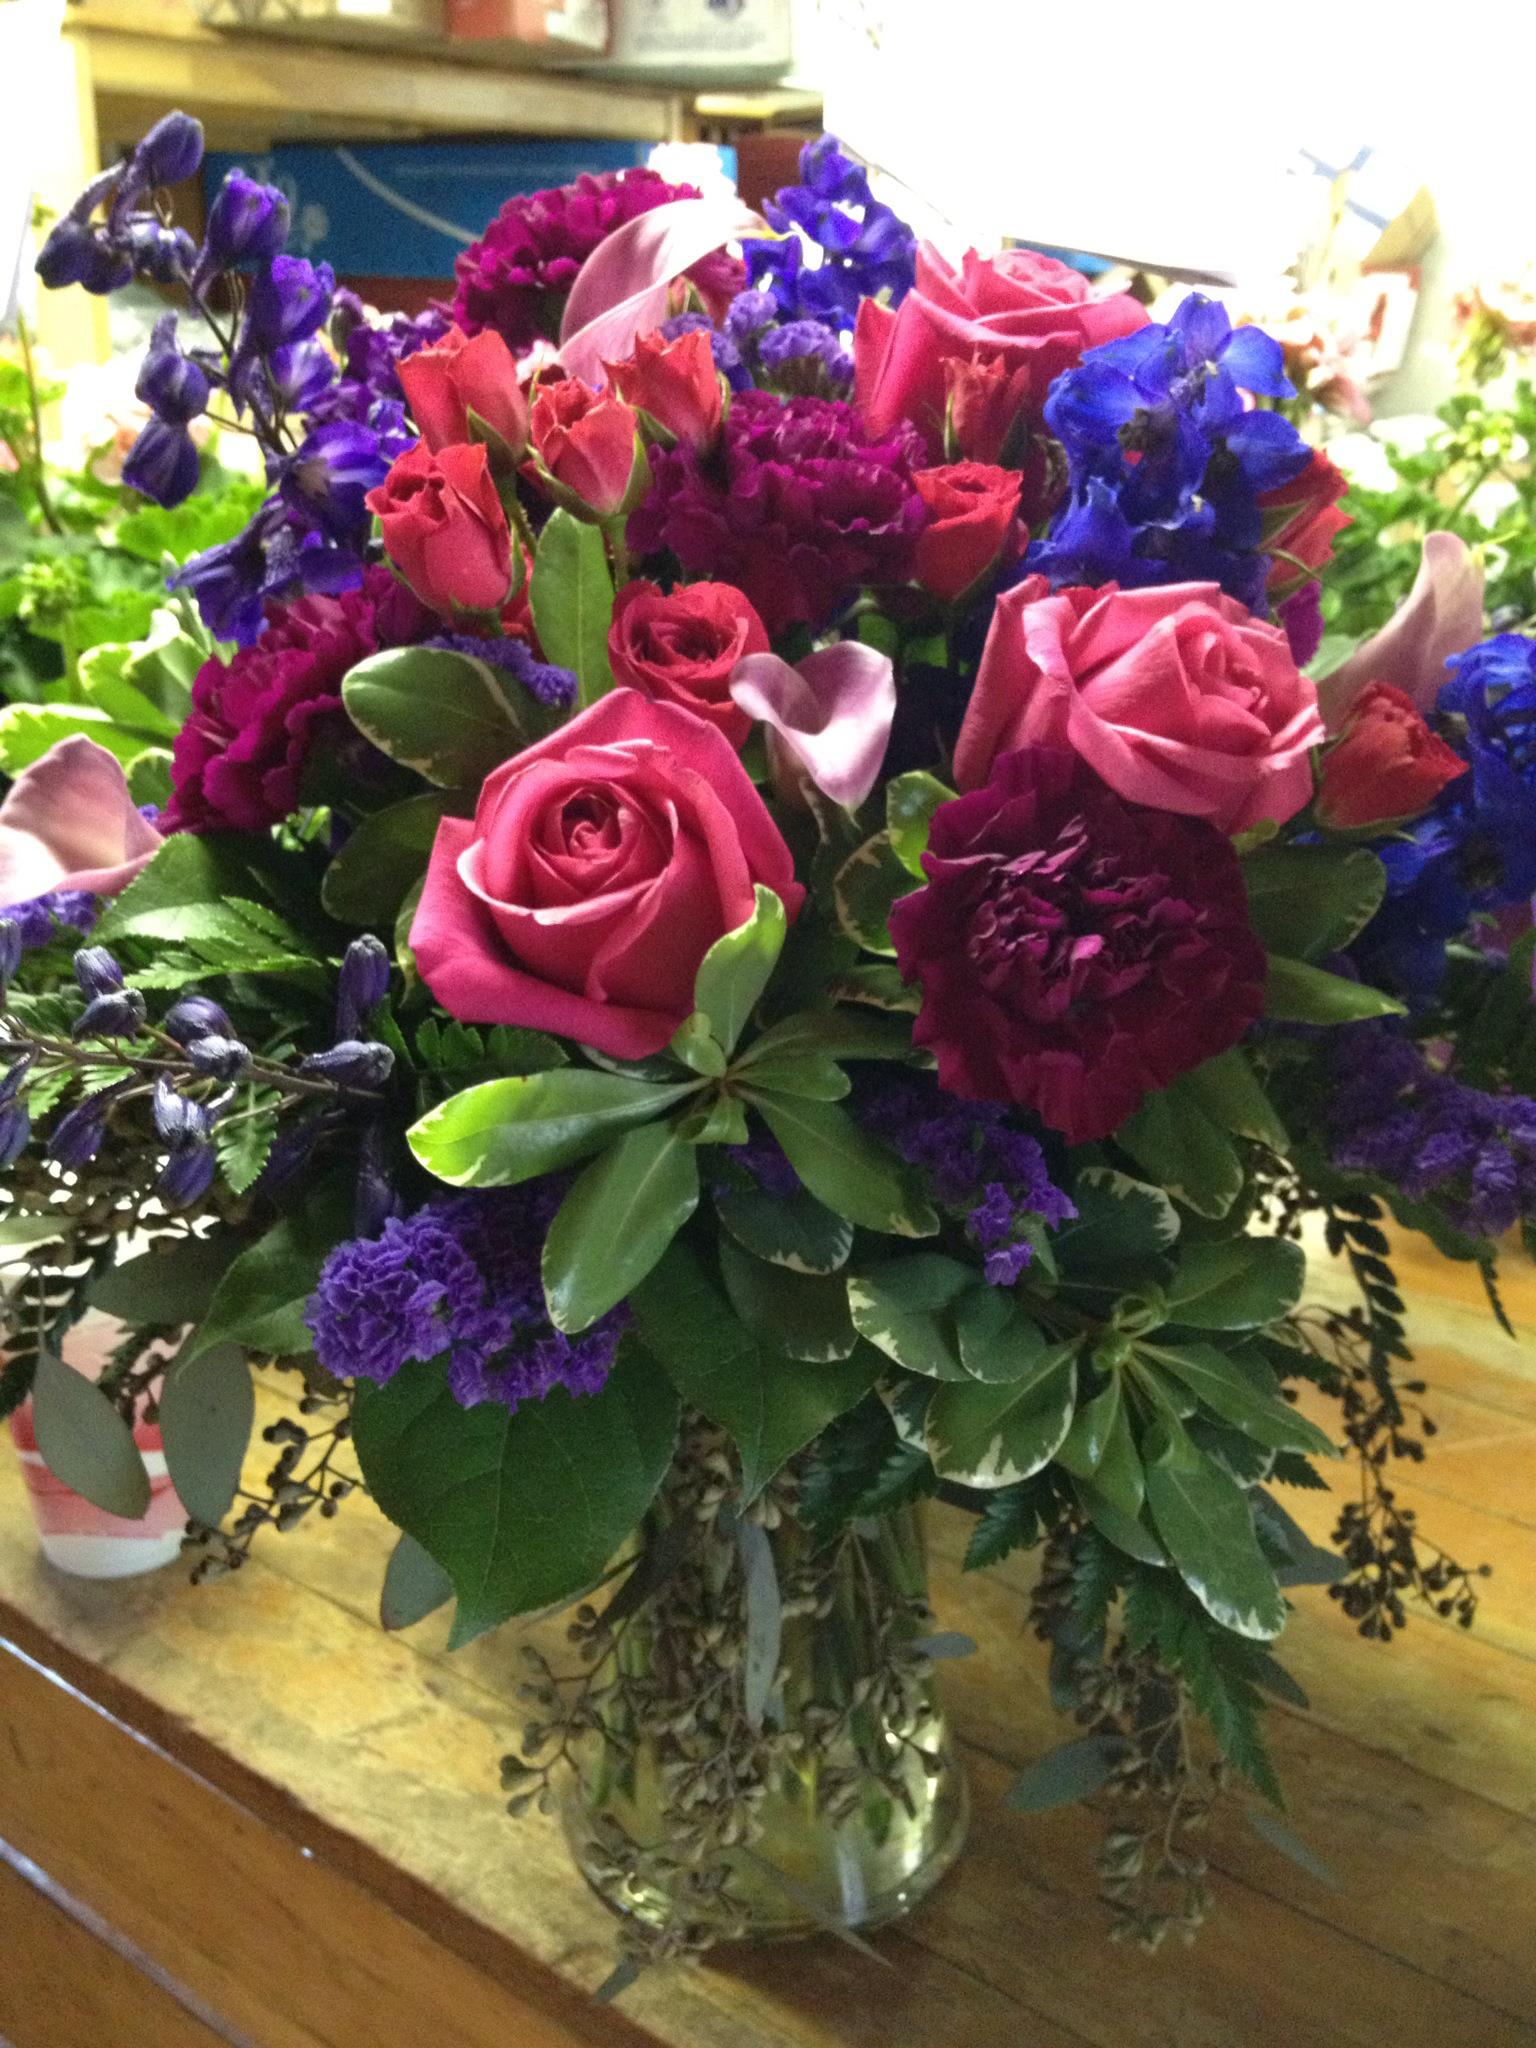 How To Care For Fresh Cut Flower Arrangements  Laurel. Rash Signs. Ancient Greek Signs. Mental Health Signs Of Stroke. Jewelry Signs Of Stroke. Environmental Hazard Signs. Vein Signs. Ketoacidosis Signs. February 15 Signs Of Stroke